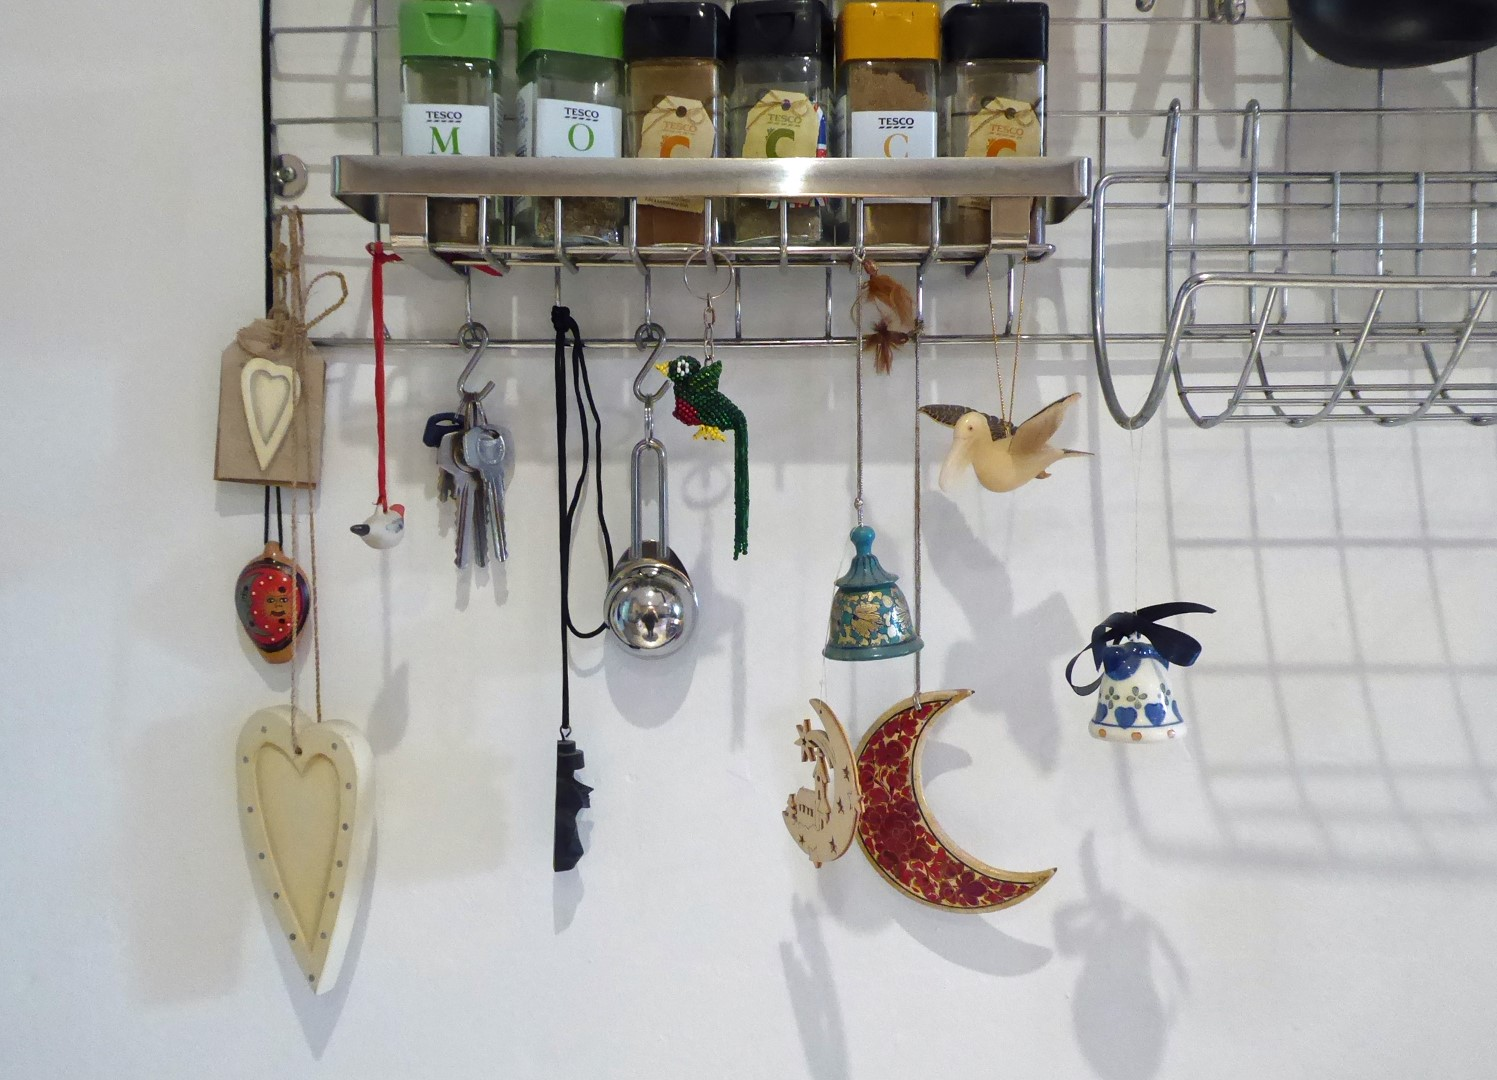 Small decorations hanging from a metal rack